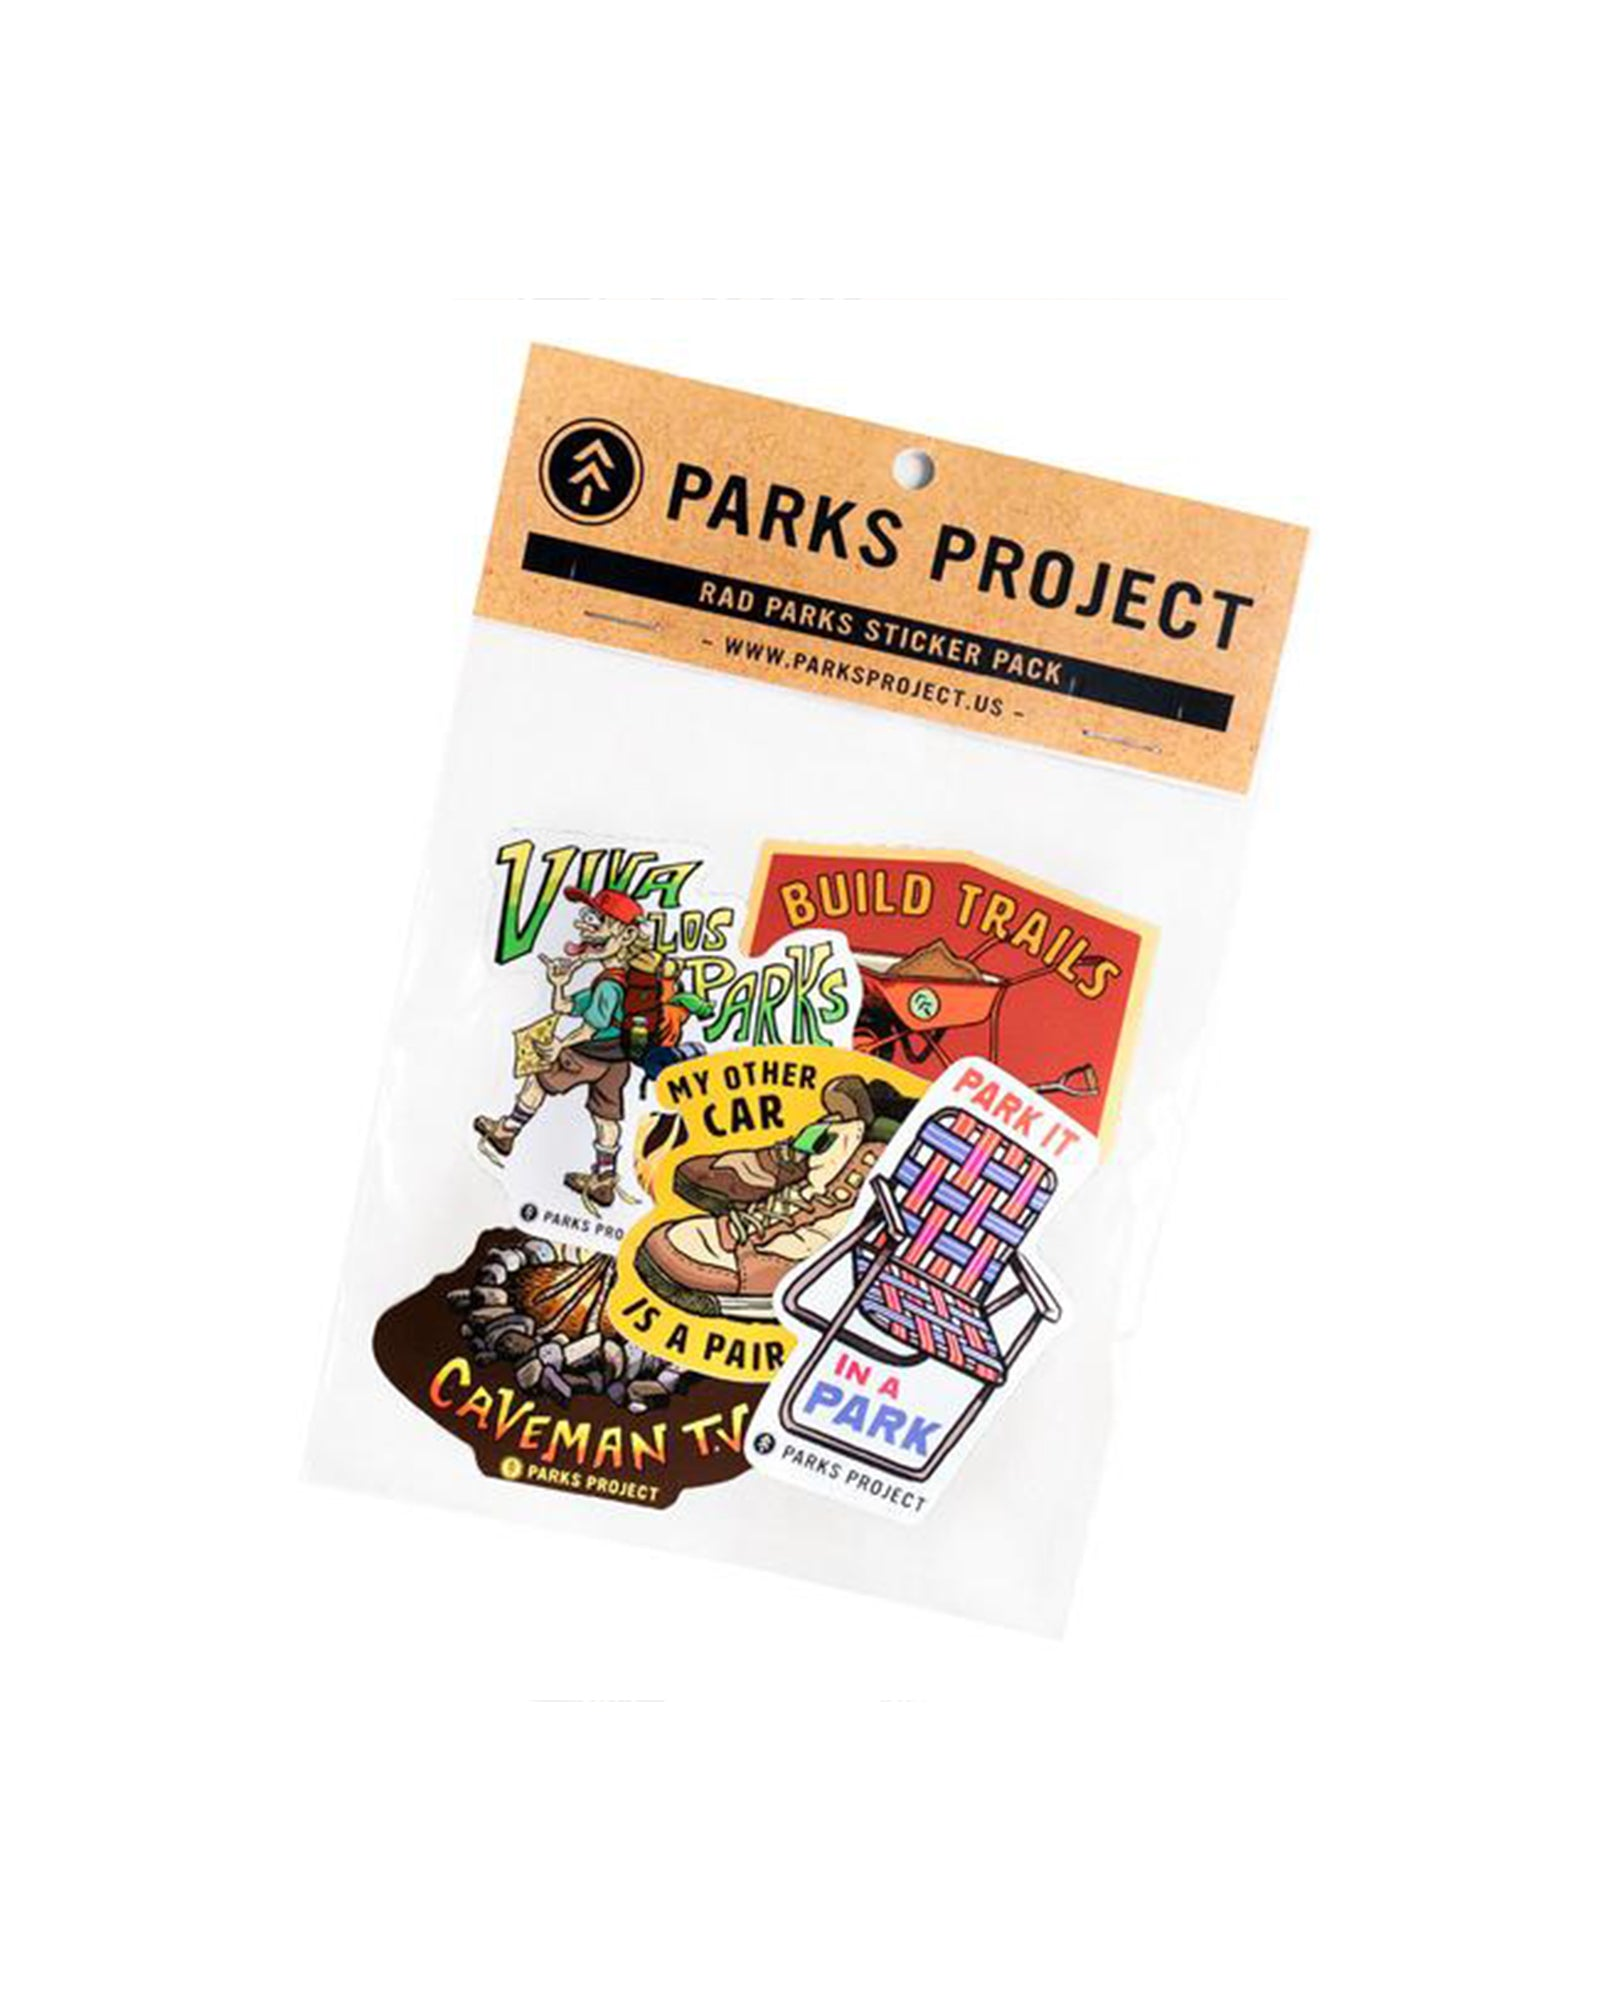 Rad Parks Sticker Pack | Parks Project | National Park Stickers